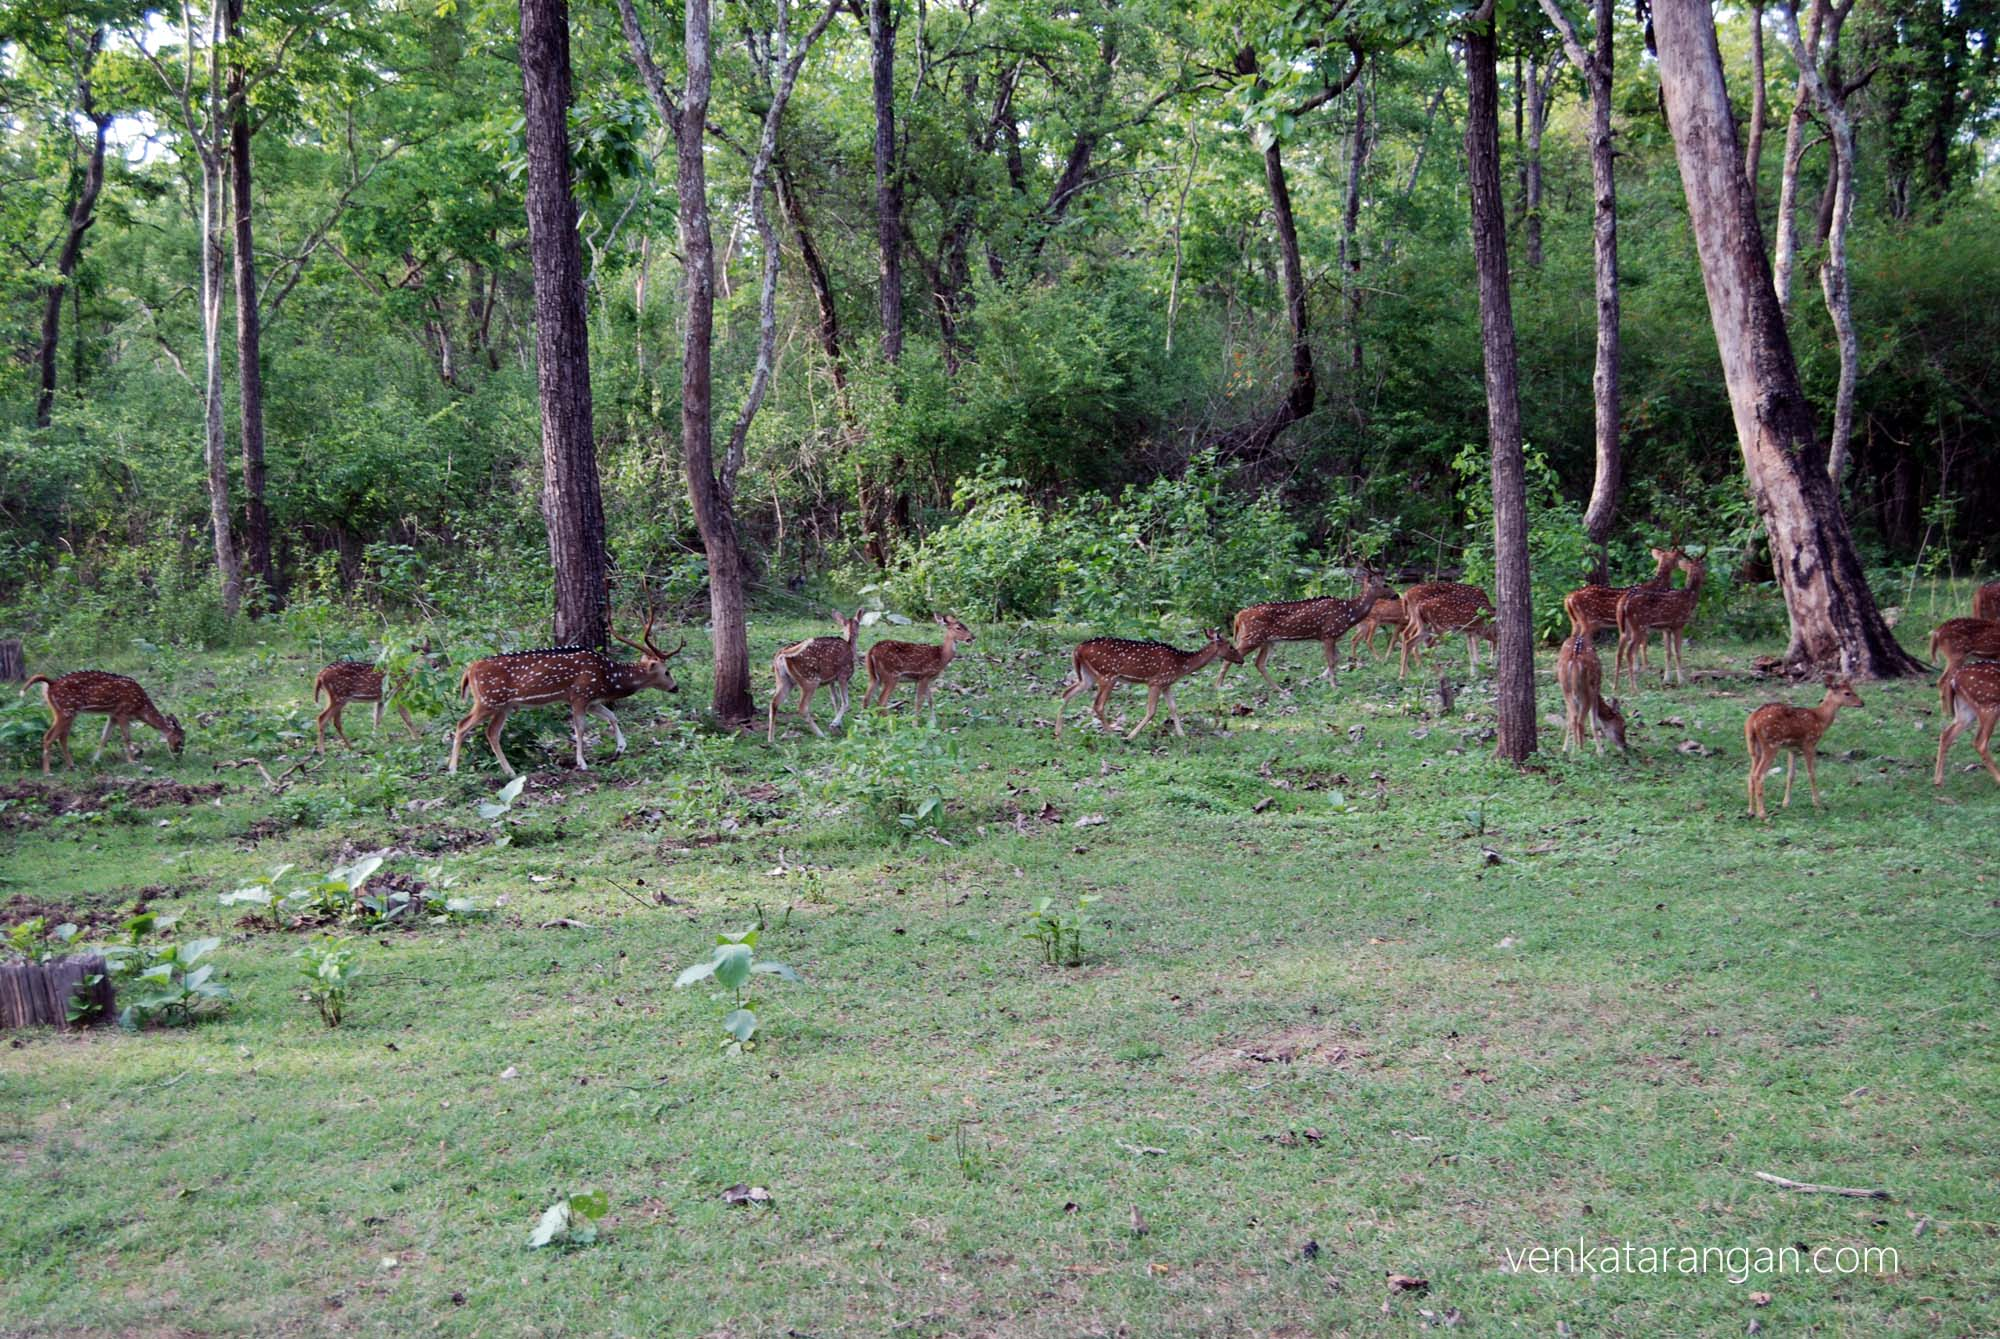 Spotted Deer inside the forest